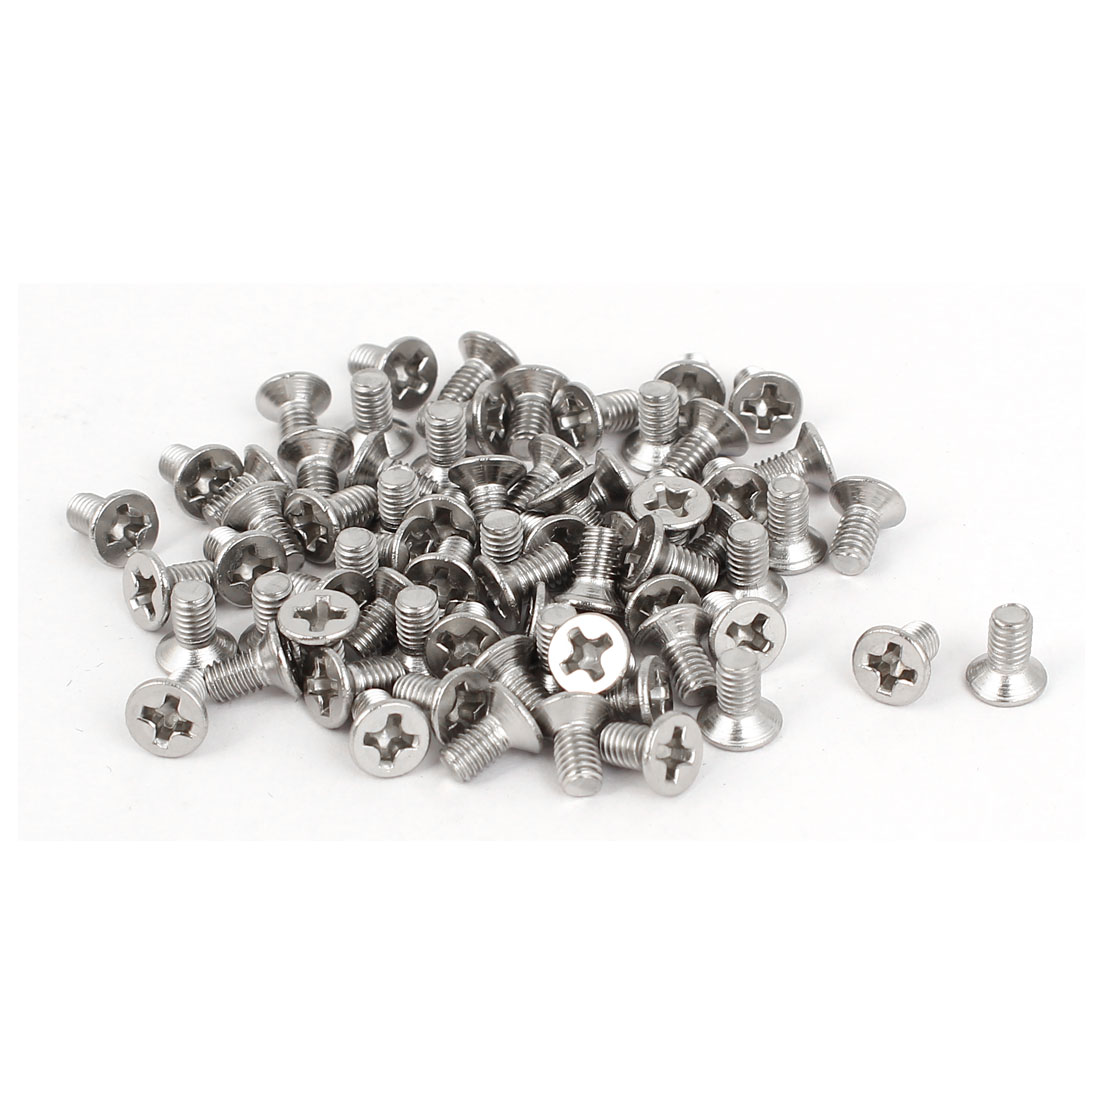 M3 x 6mm 316 Stainless Steel Phillips Drive Flat Head Fully Thread Screws 60 Pcs